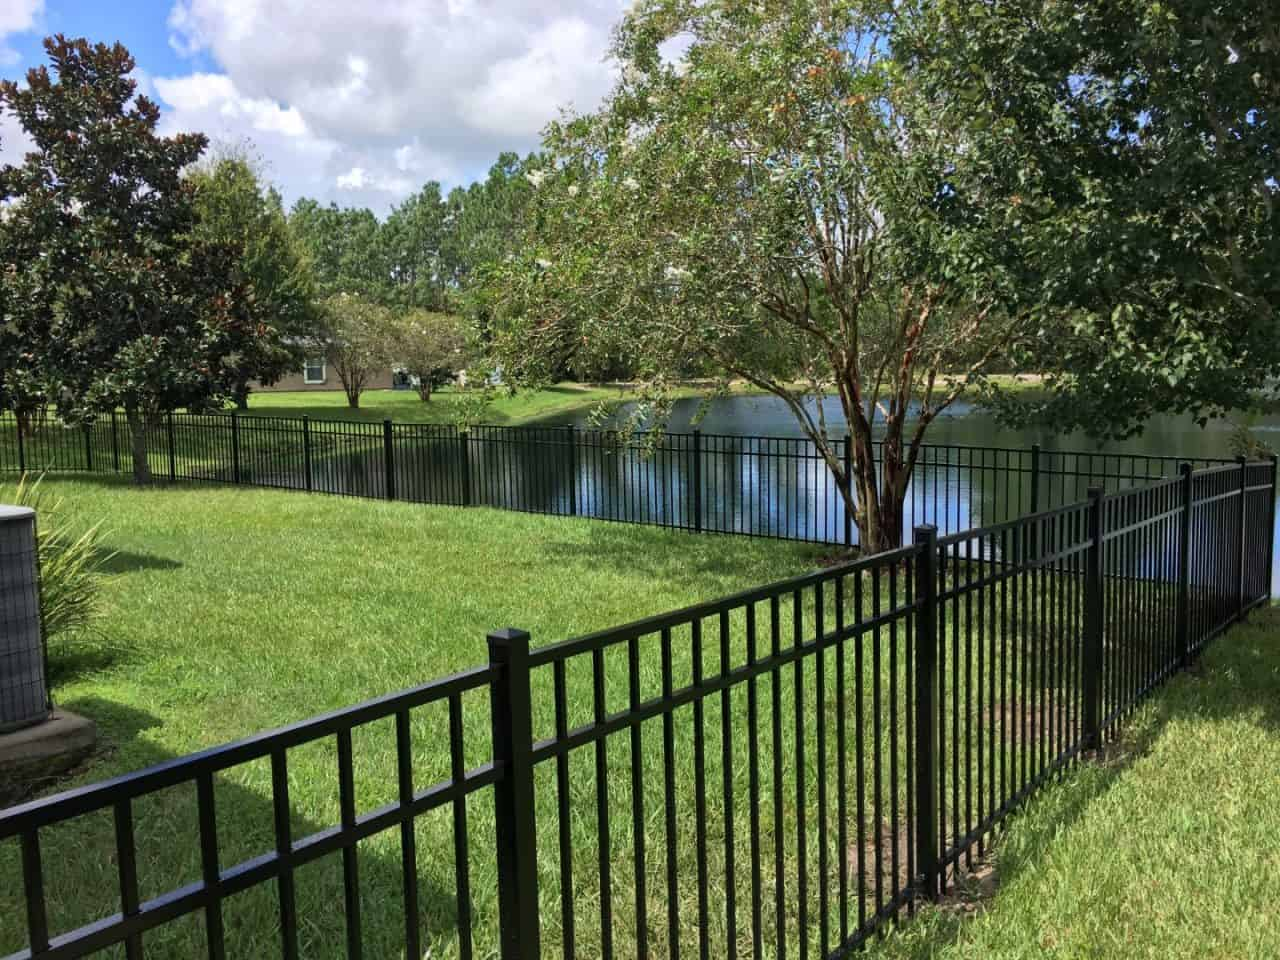 https://www.superiorfenceandrail.com/wp-content/uploads/2020/03/Orlando-Fence-Options-1280x960.jpg